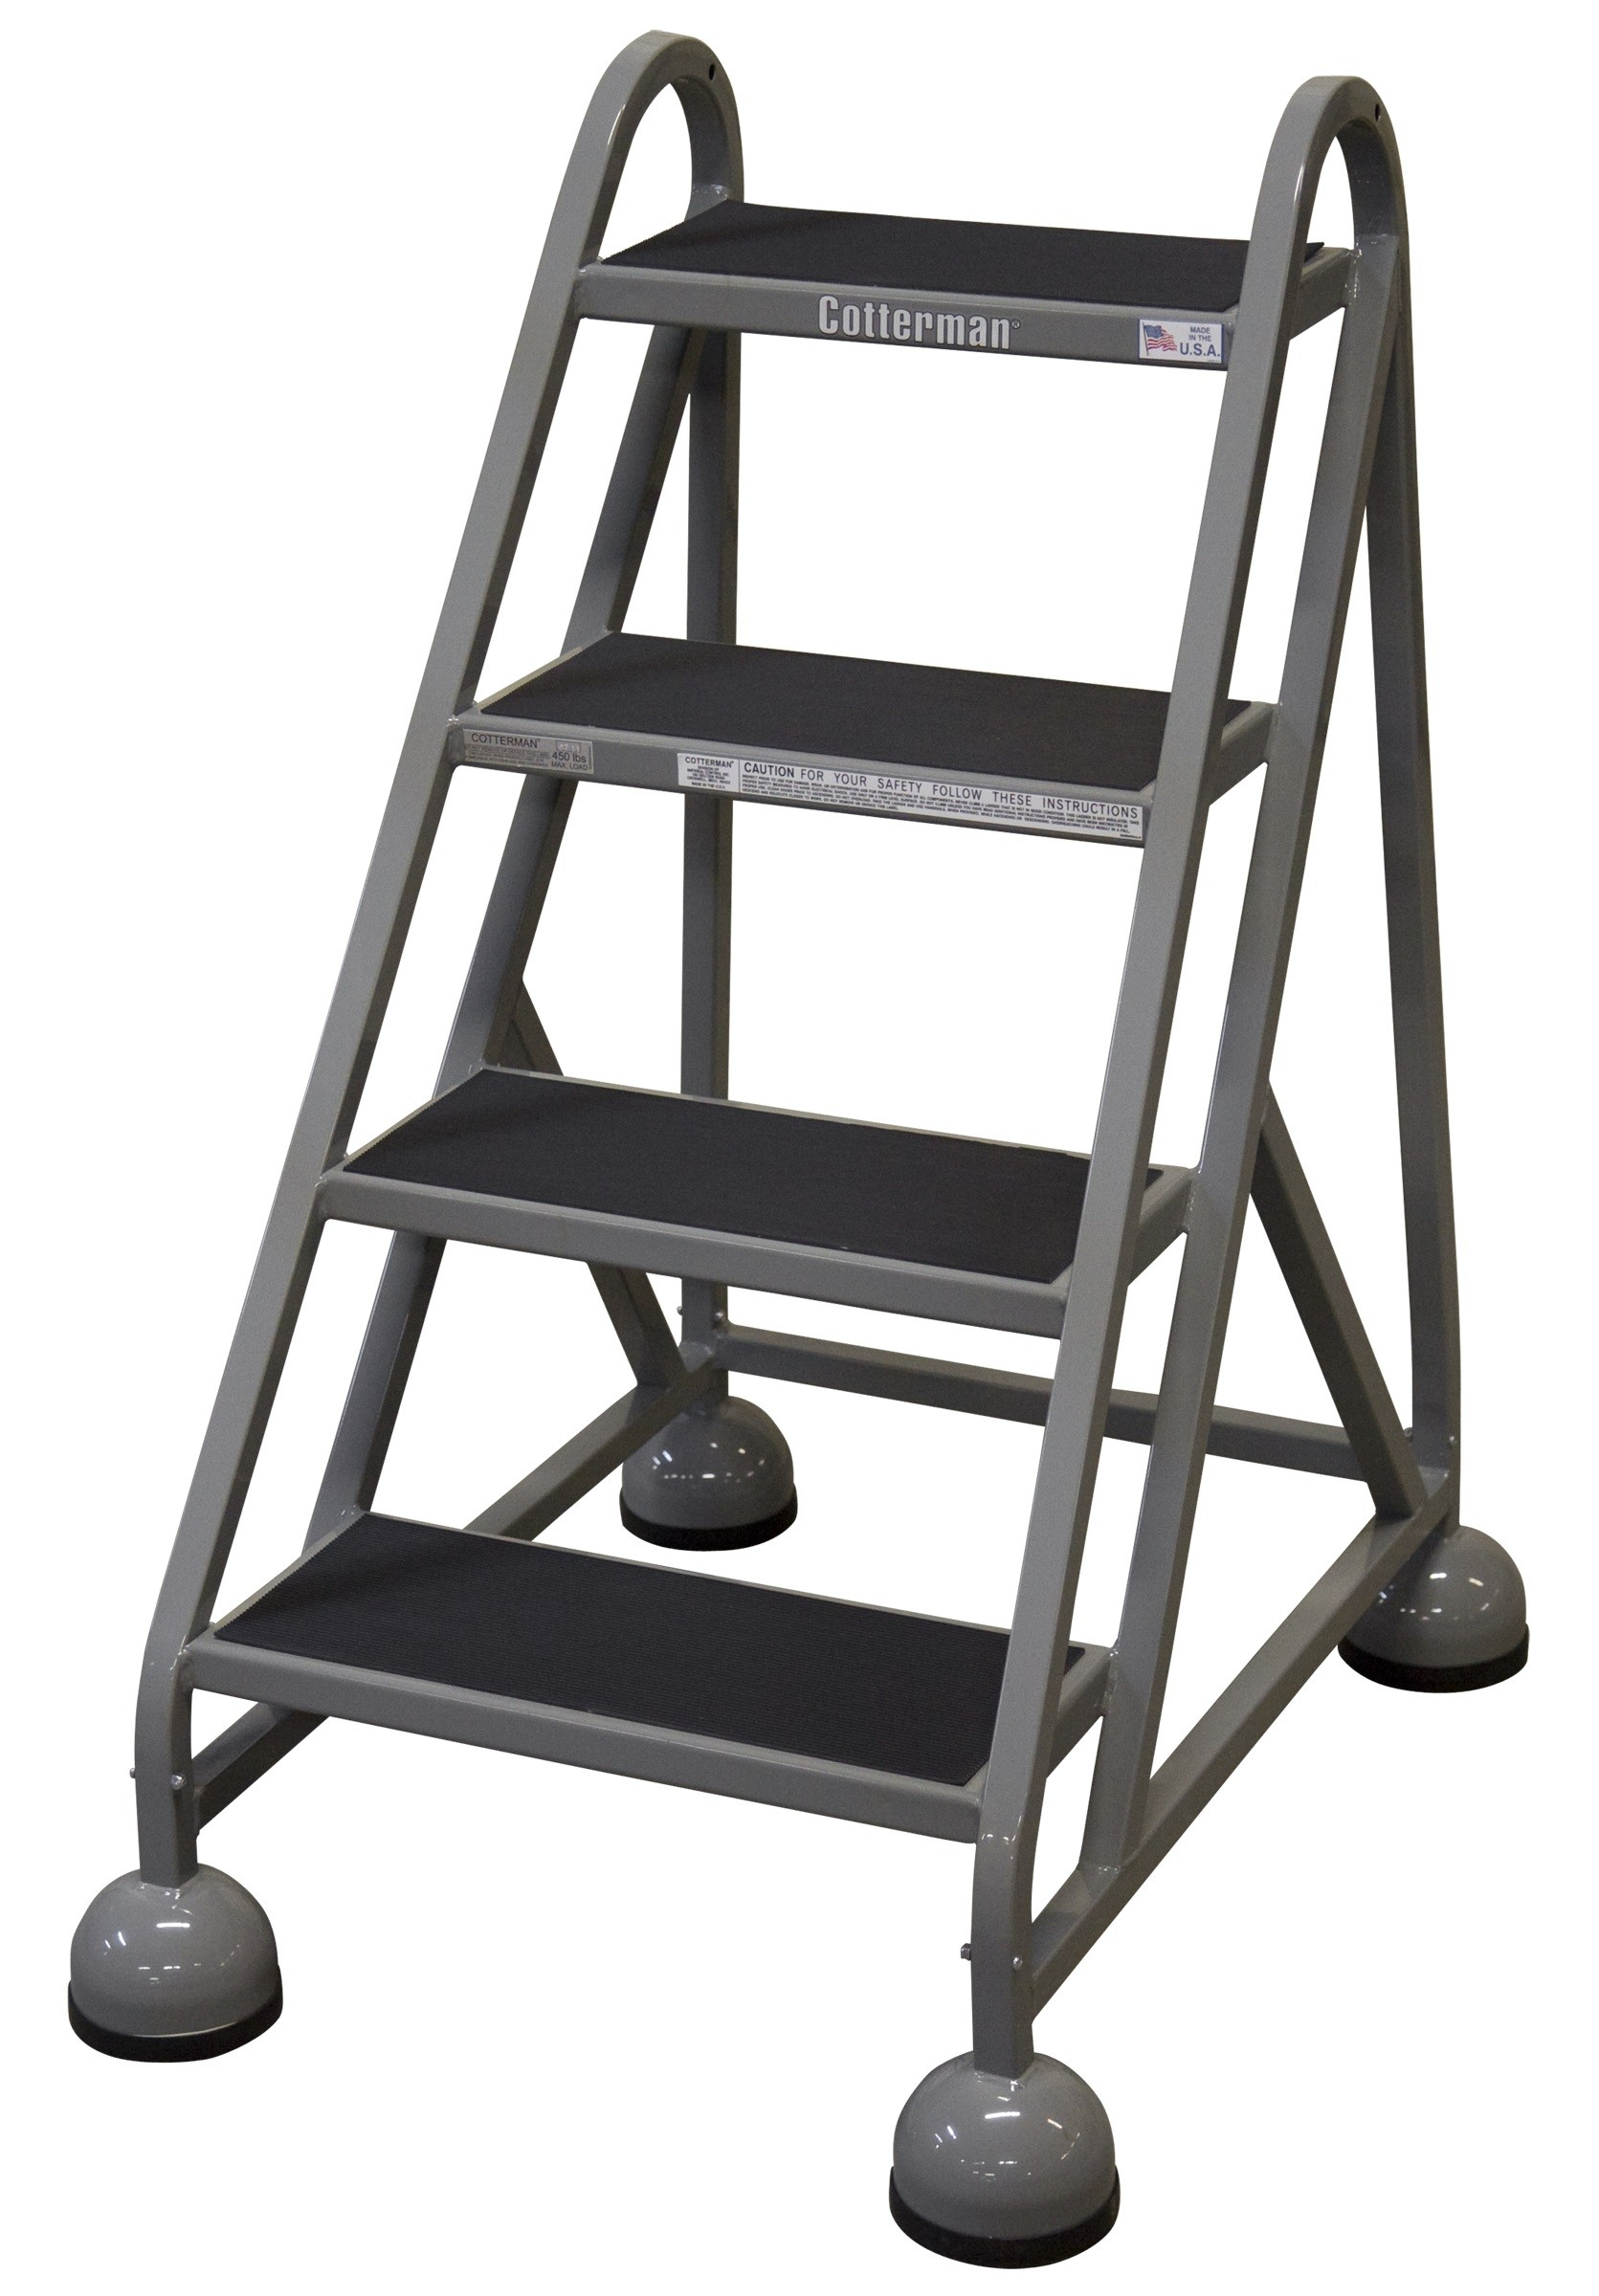 Calico Ladders Cotterman St 400 Steel Masterstep Rolling